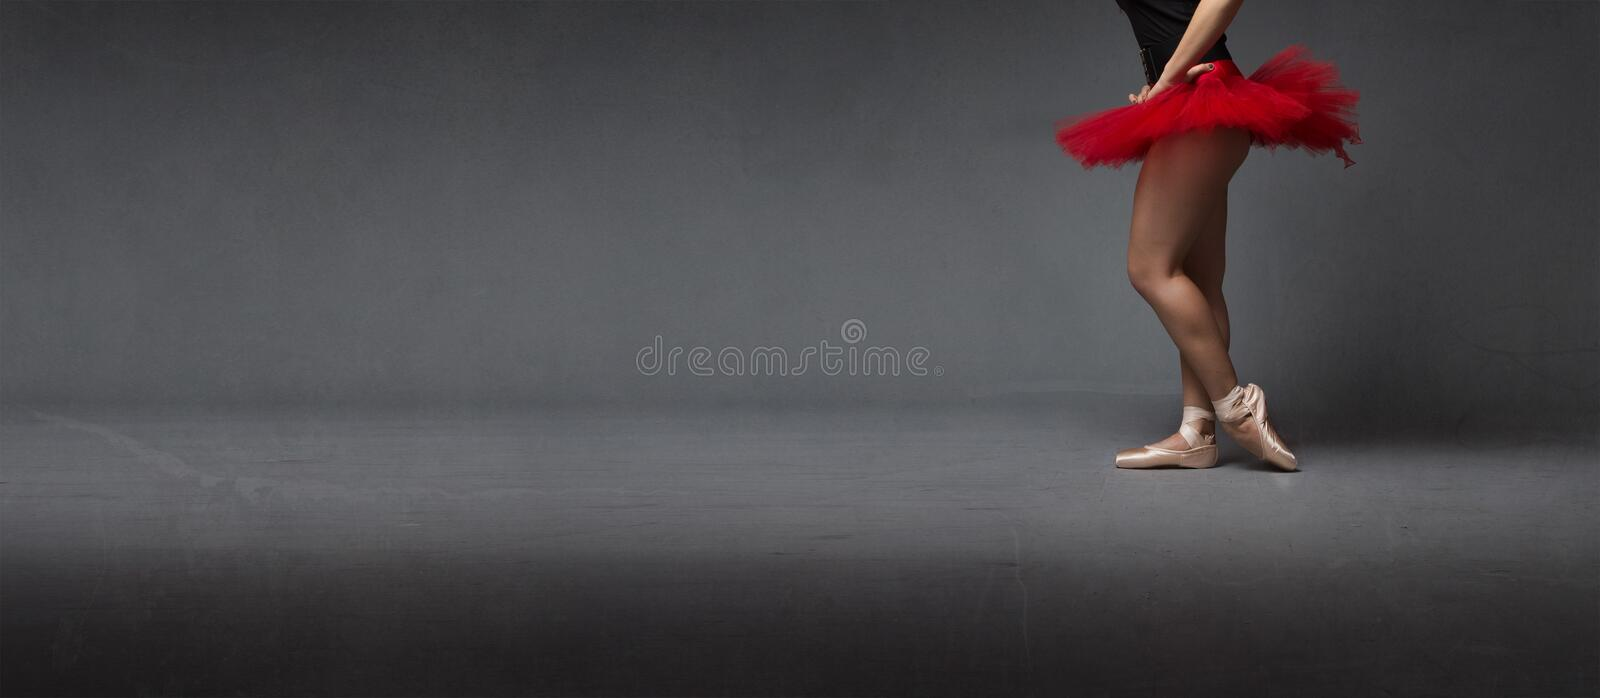 Red tutu and tiptoe lateral view royalty free stock photography